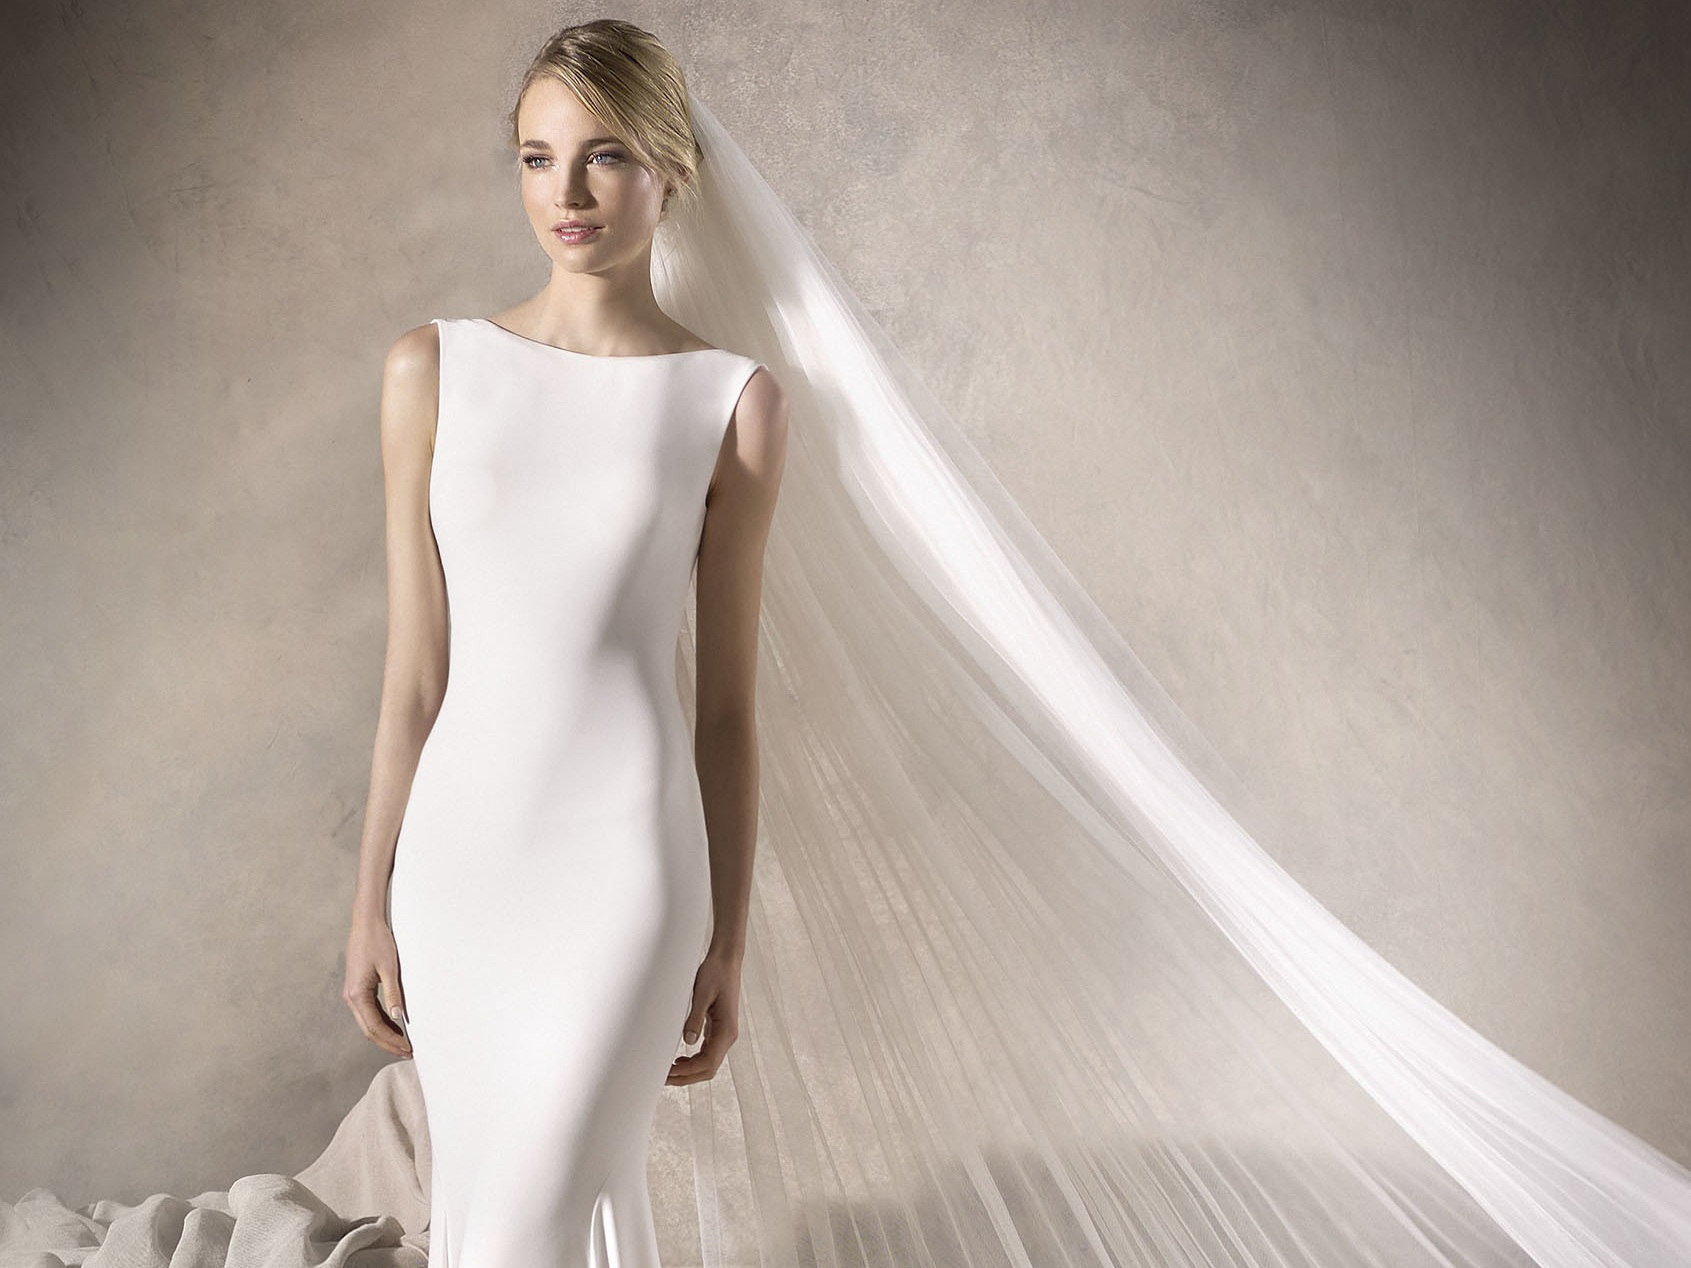 Burr Bridal - A free bridal consultation with £100 voucher with any bridal gown purchase